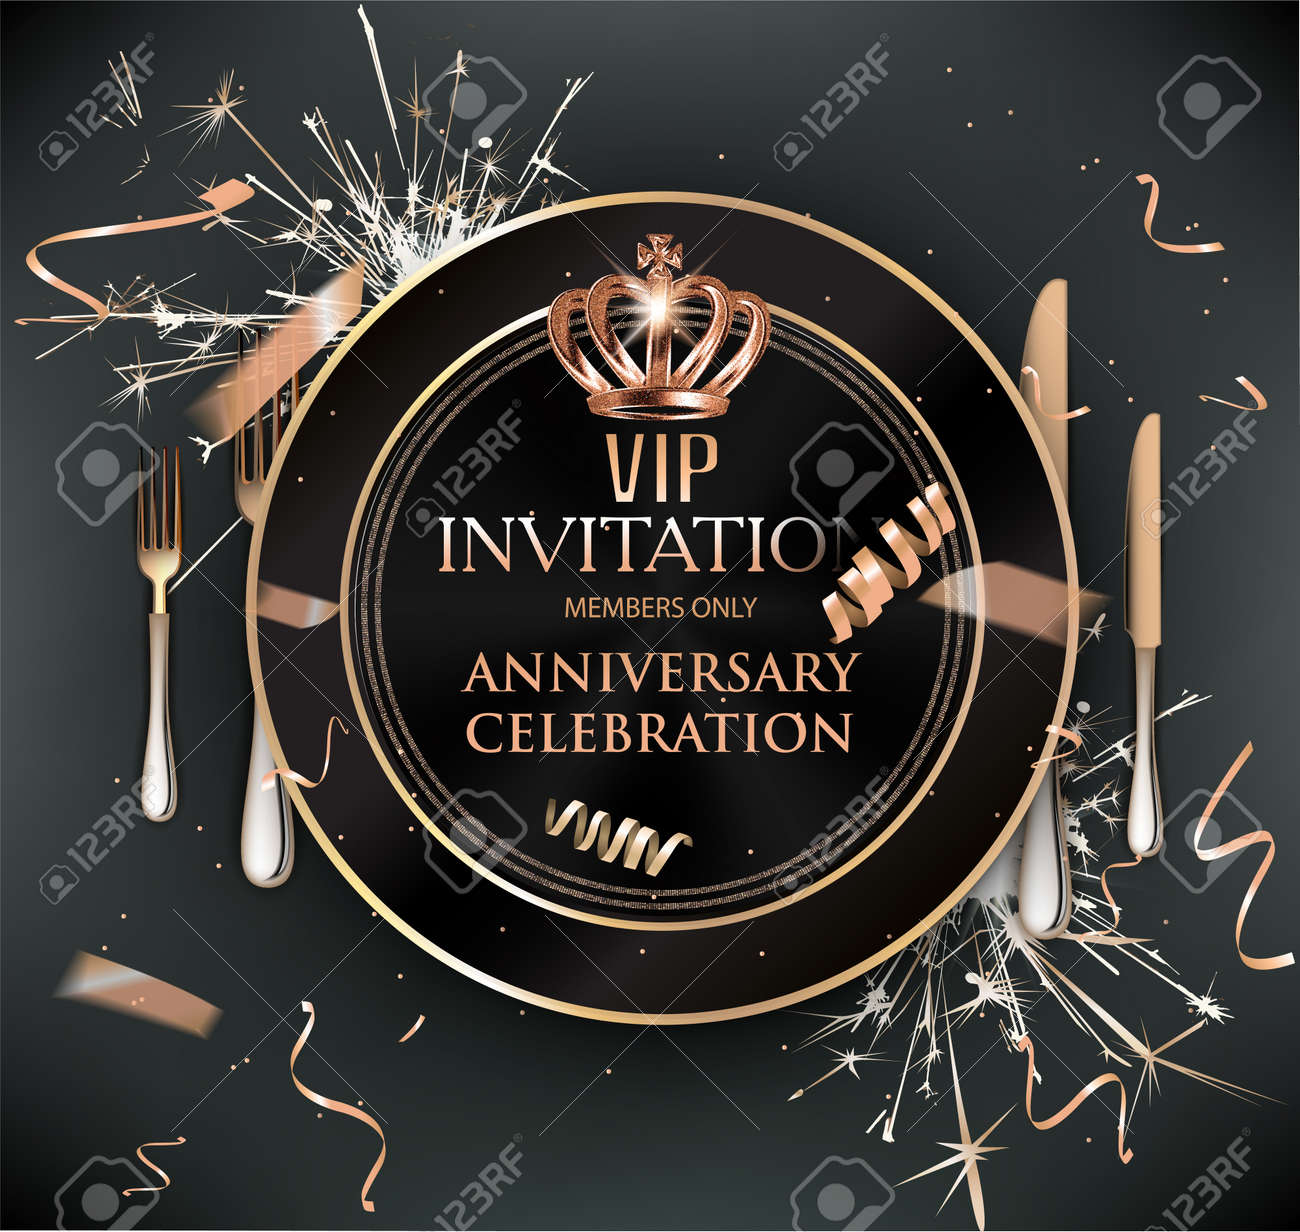 Vip Dinner Invitation Card With Cold Confetti Plate And Cutlery